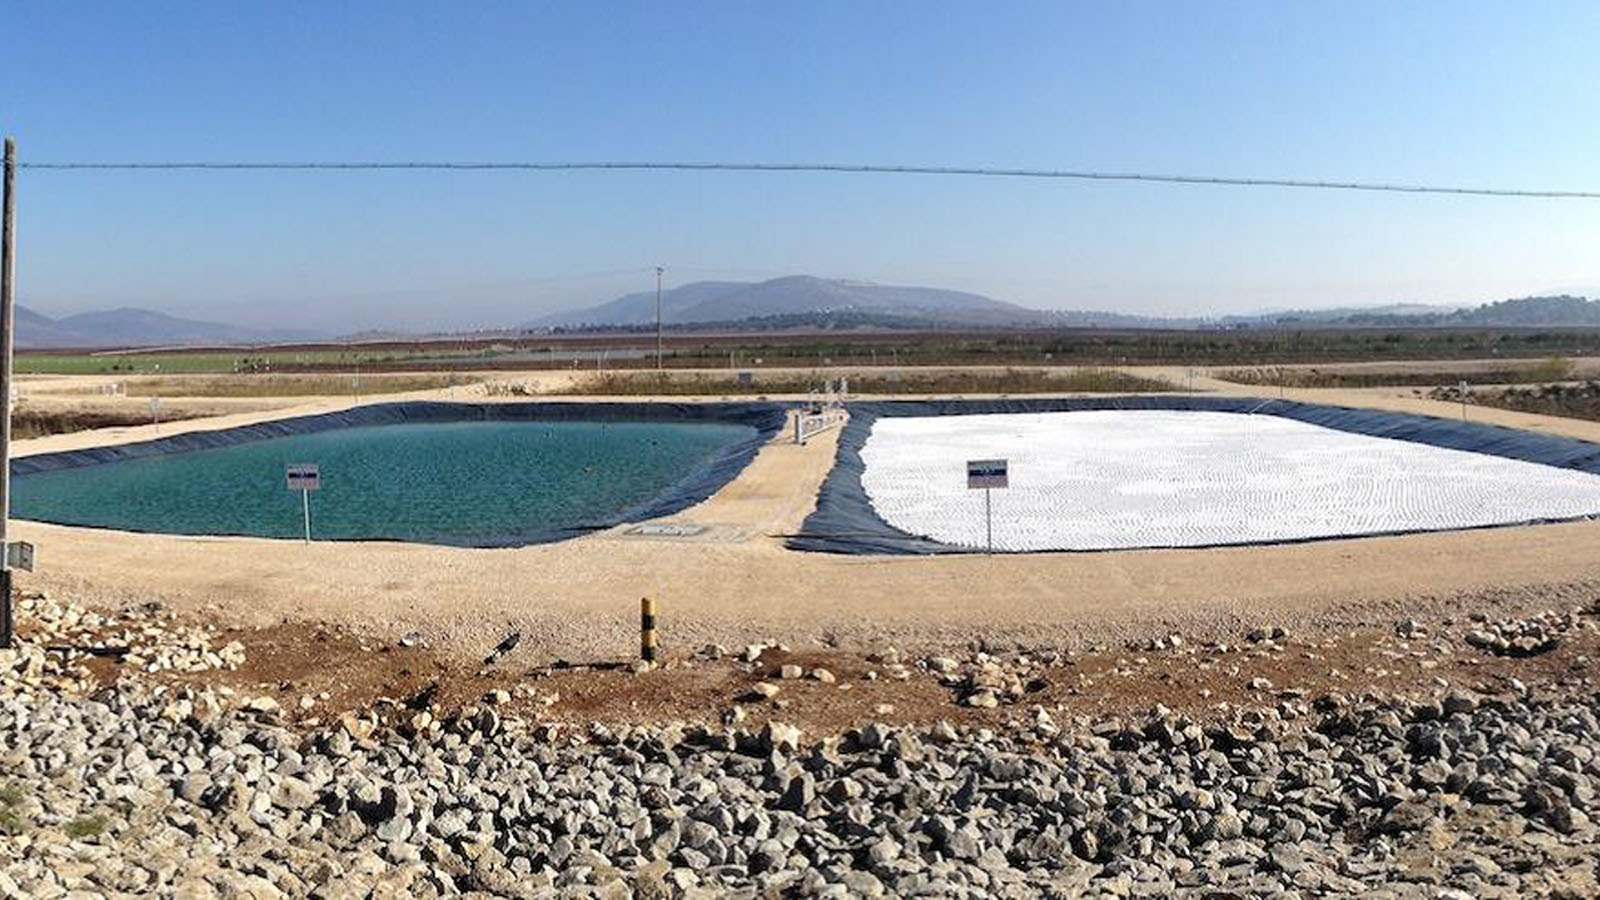 TopUp balls floating on an Israeli reservoir in Eshkol. Photo courtesy NeoTop Water Systems